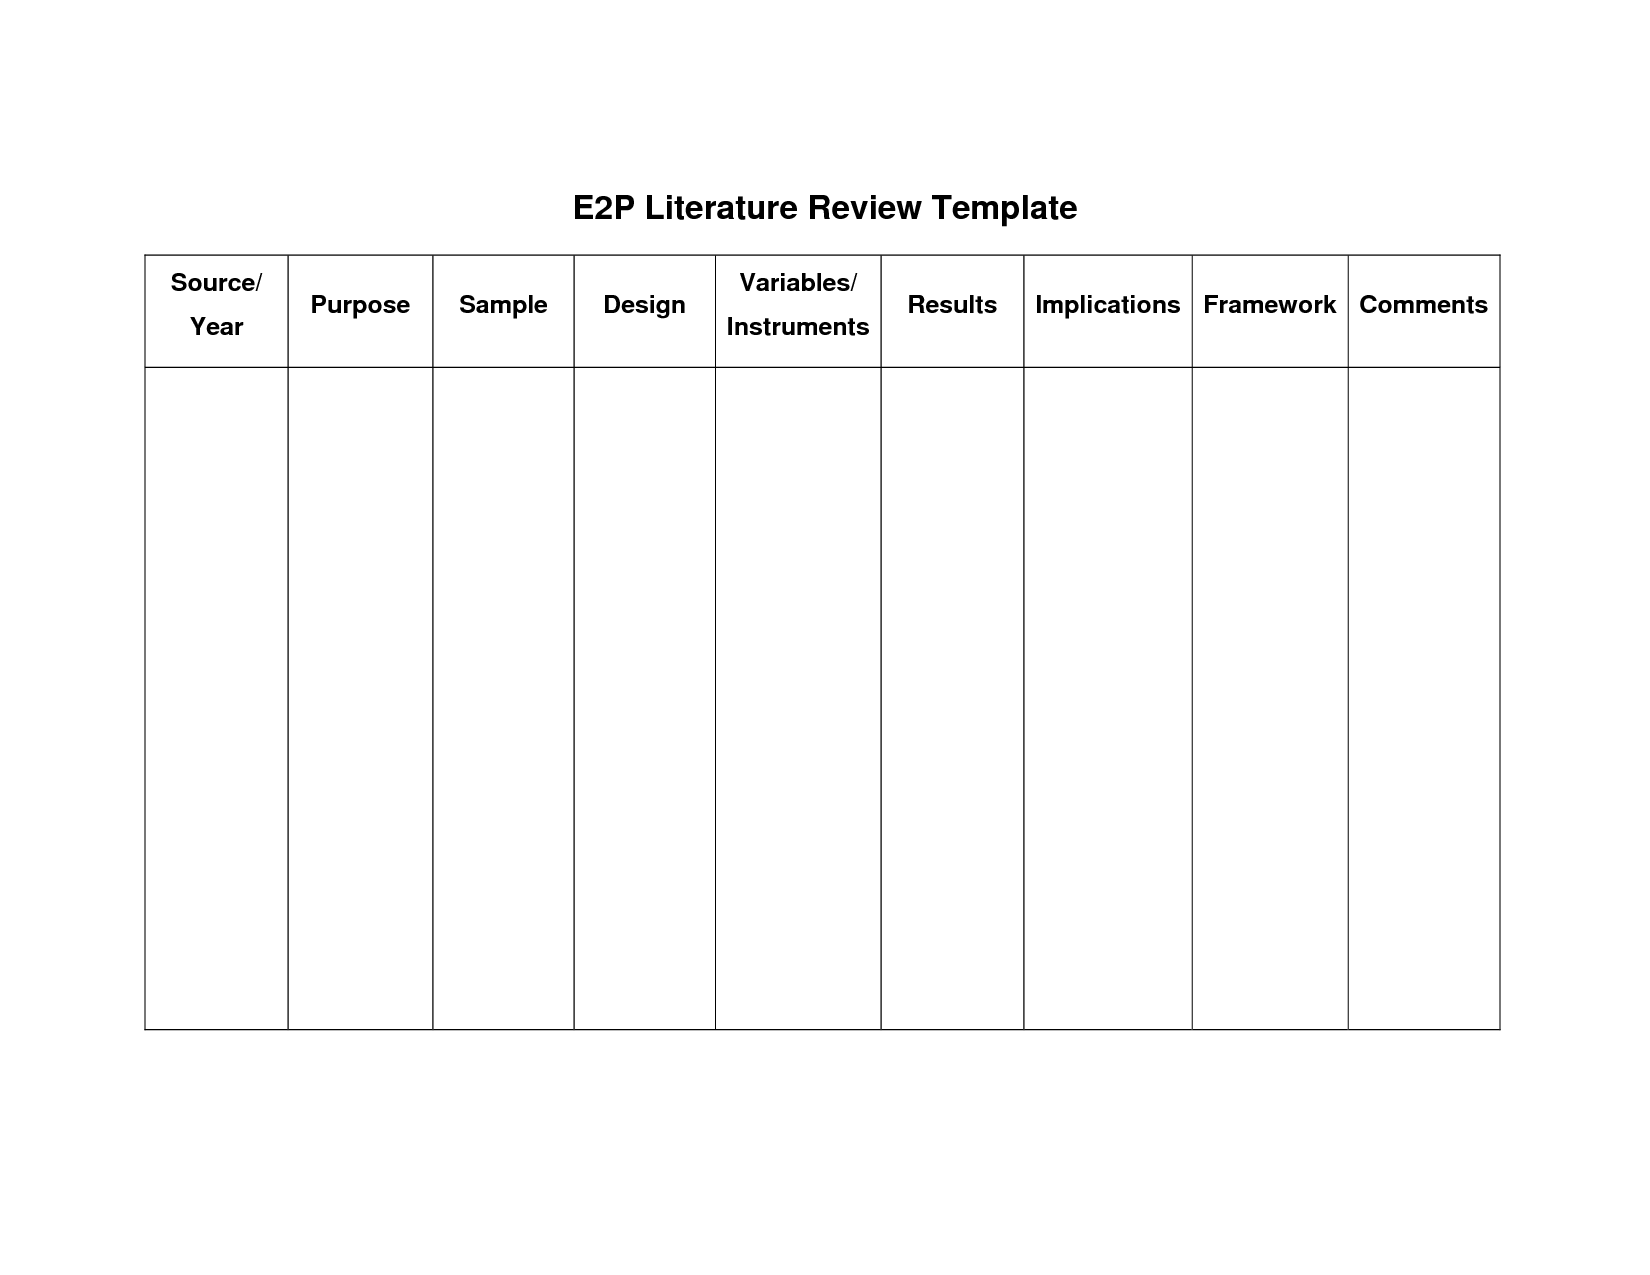 Literature review matrix template google search for Literature review template doc